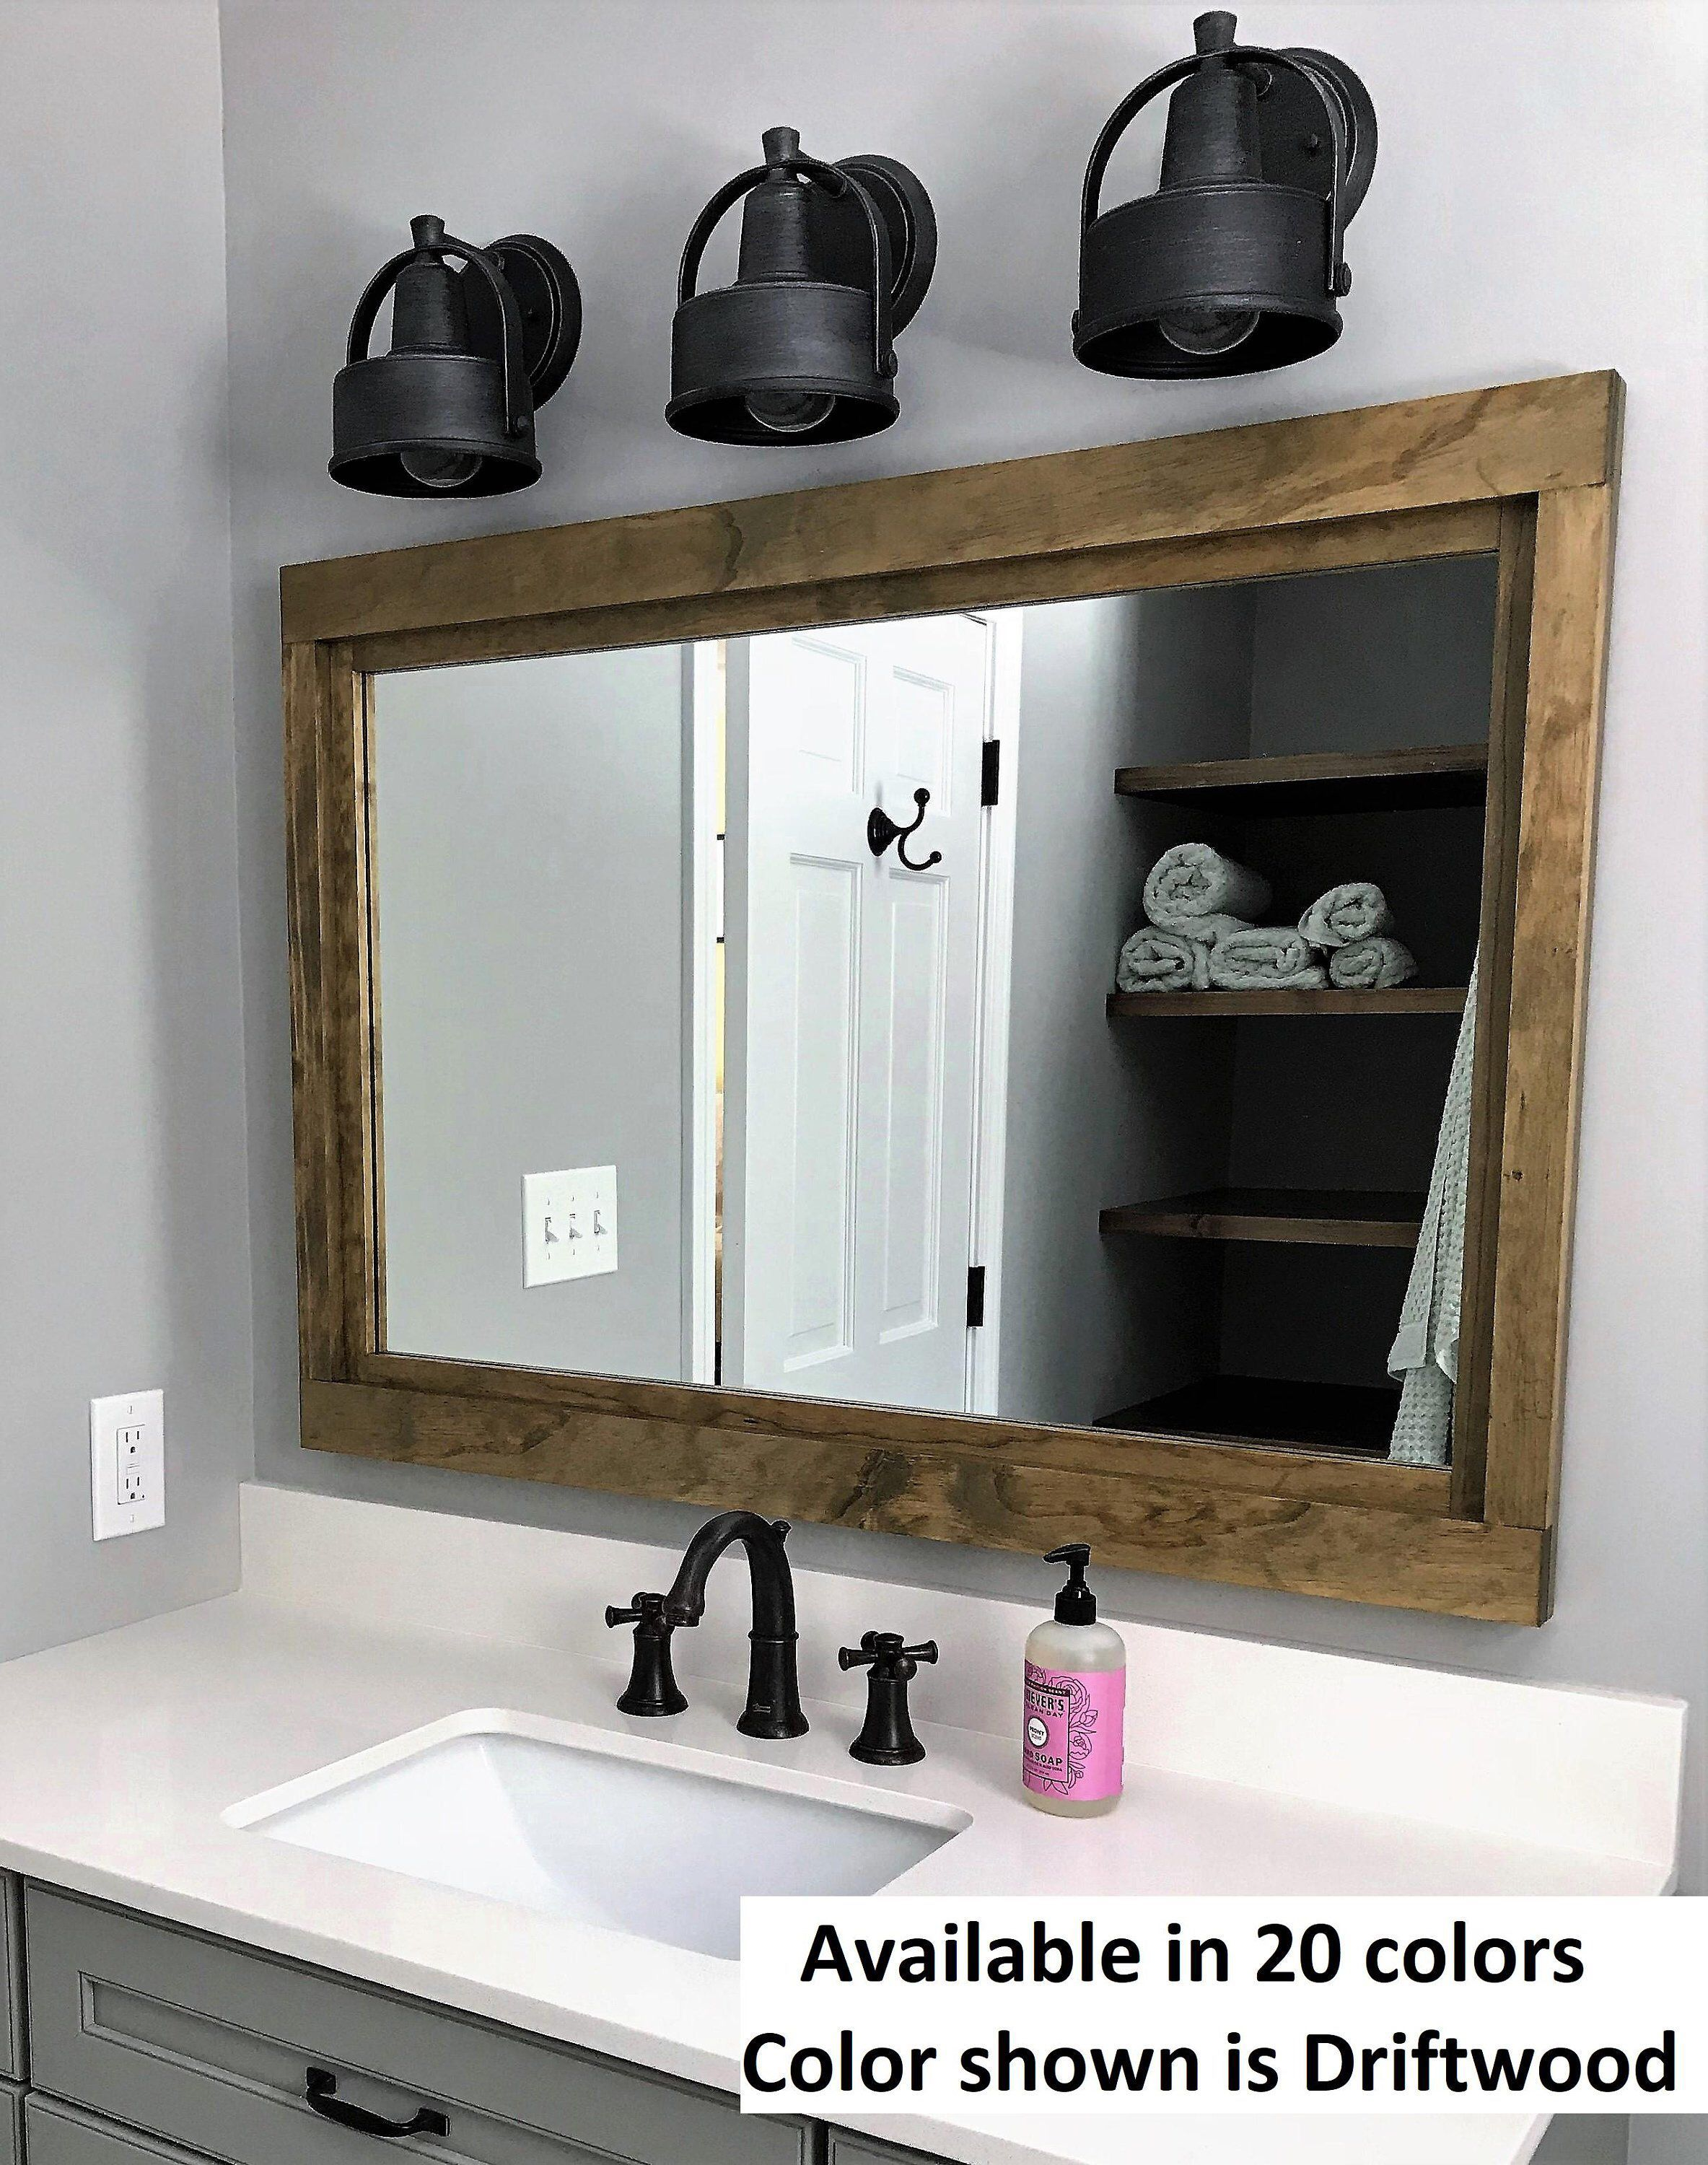 Herringbone Reclaimed Wood Framed Mirror Bathroom Vanity Mirror Rustic Bathroom Decor Available In 4 Sizes And 20 Stain Colors Shown In Driftwood Wall Mirror Cisne Com Pe